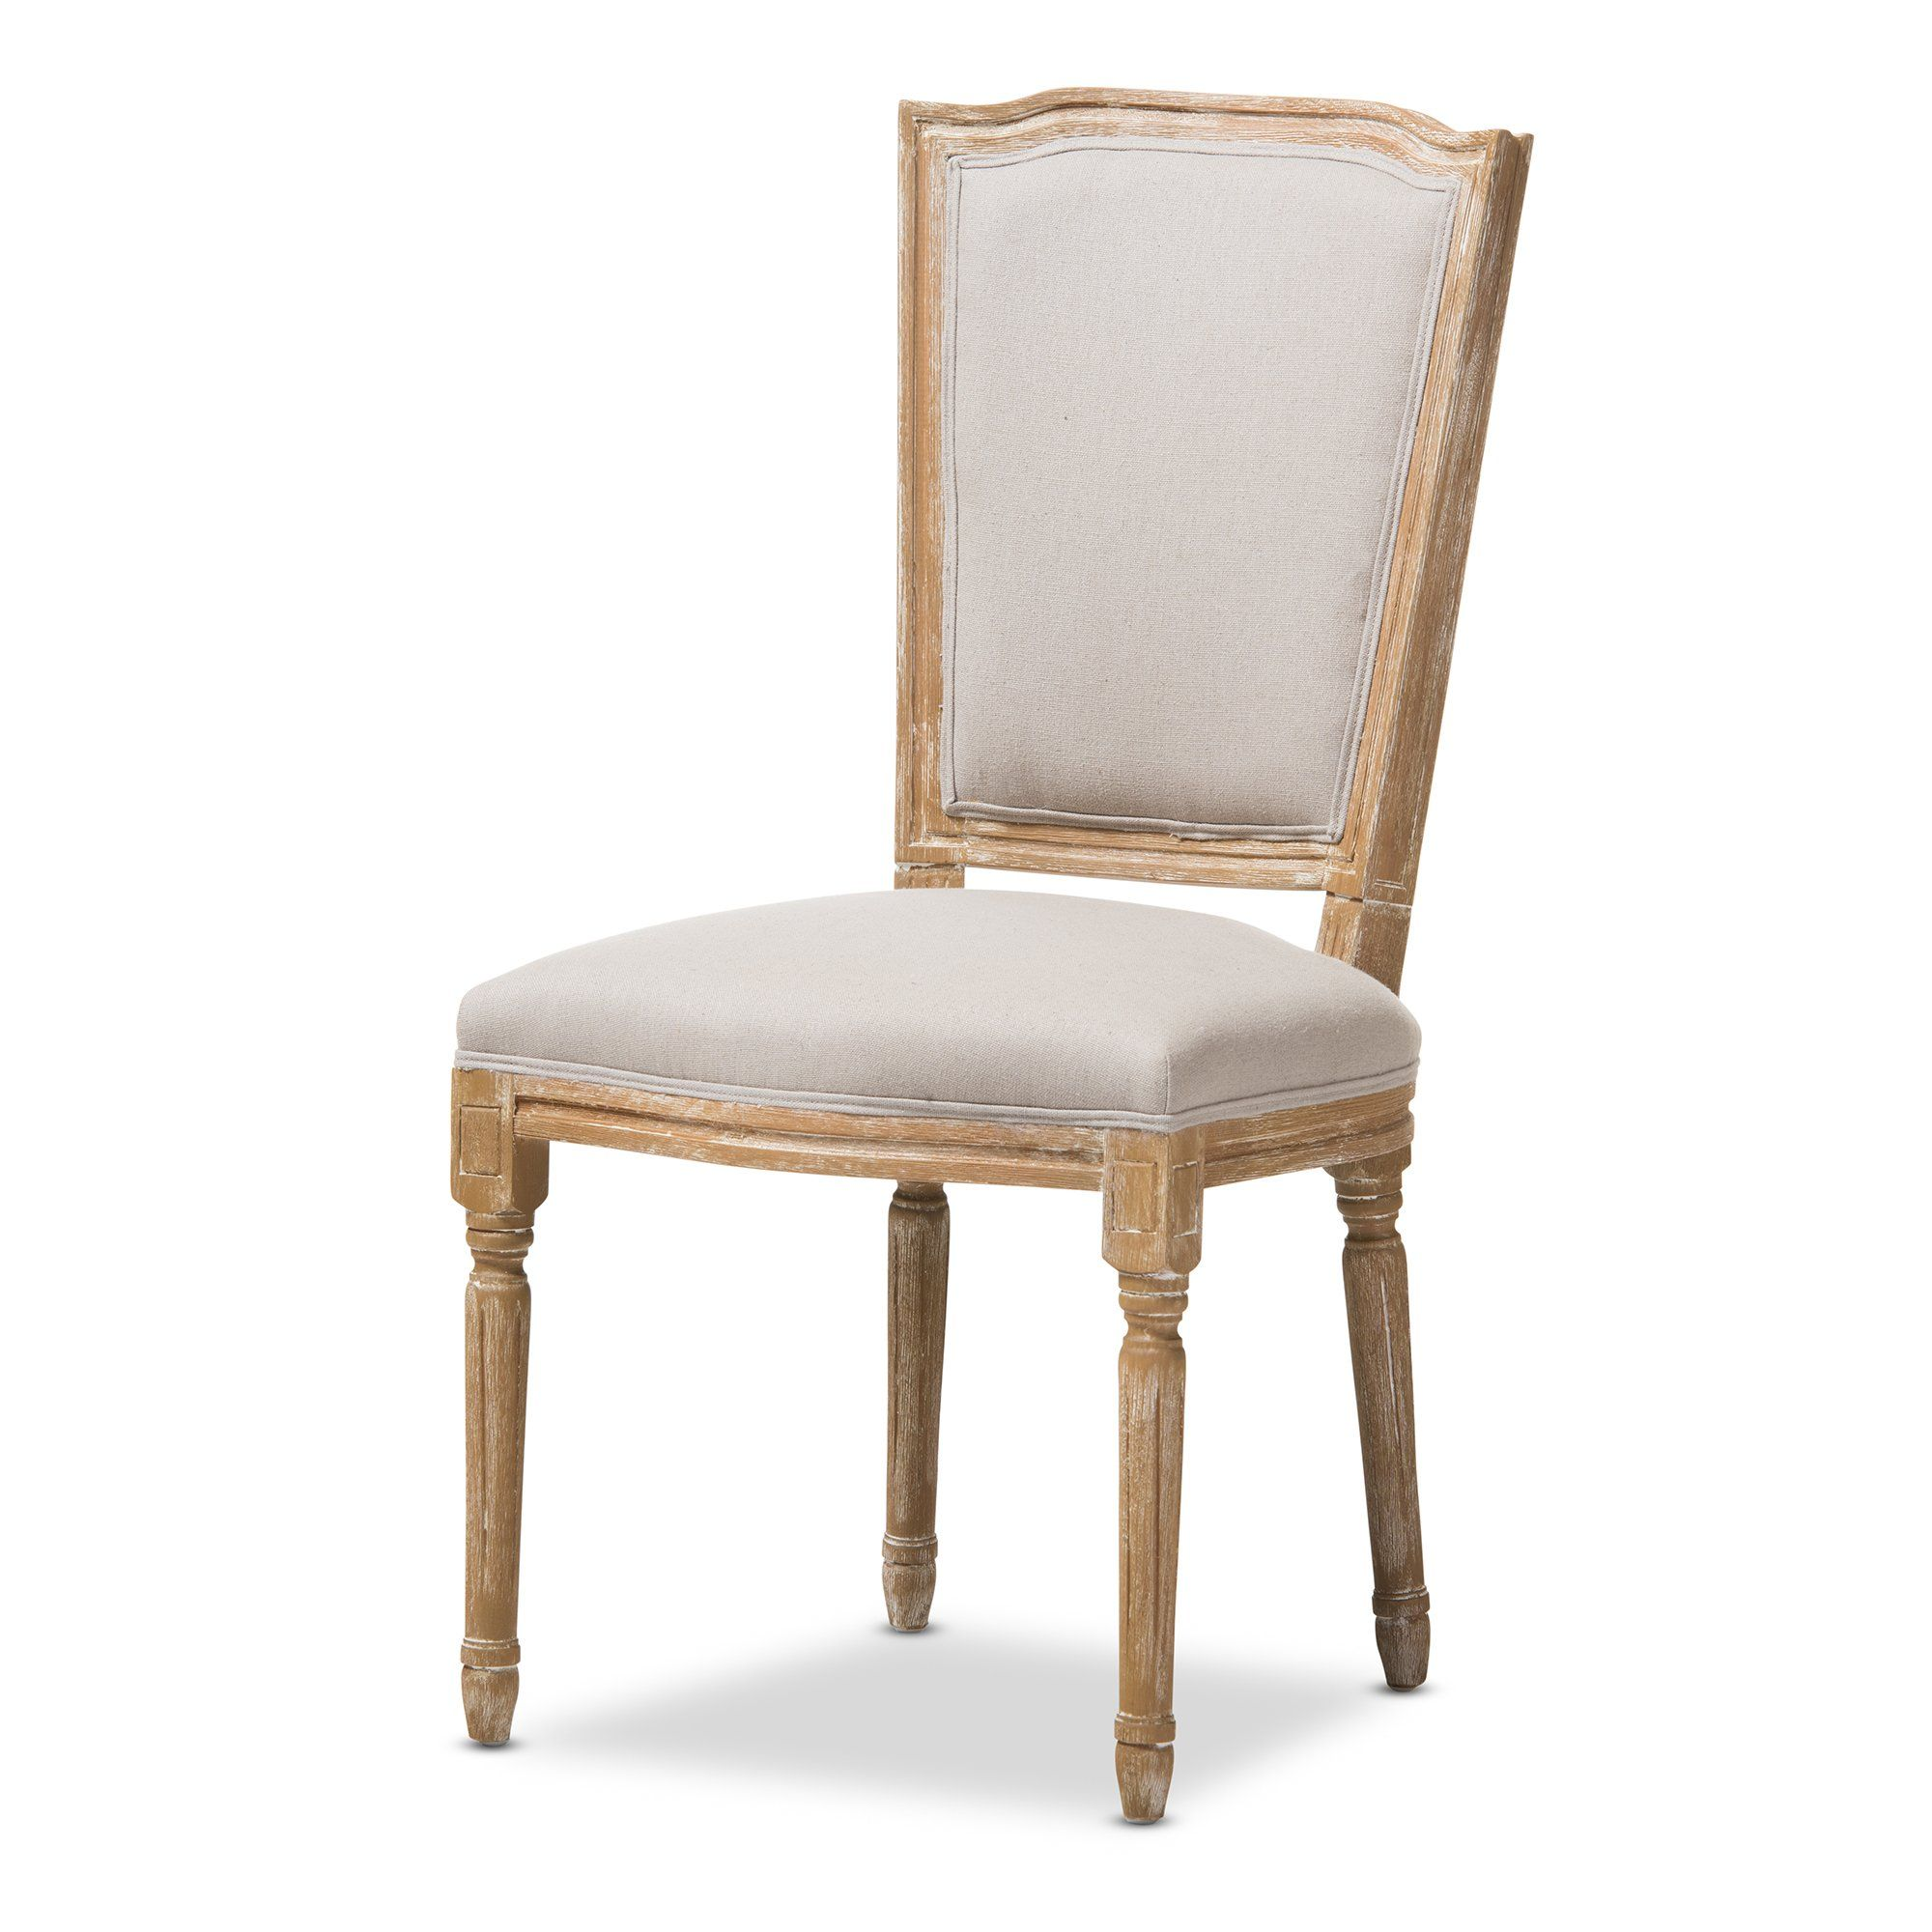 Vintage Weathered Oak Upholstered Dining Room Chair Cadencia